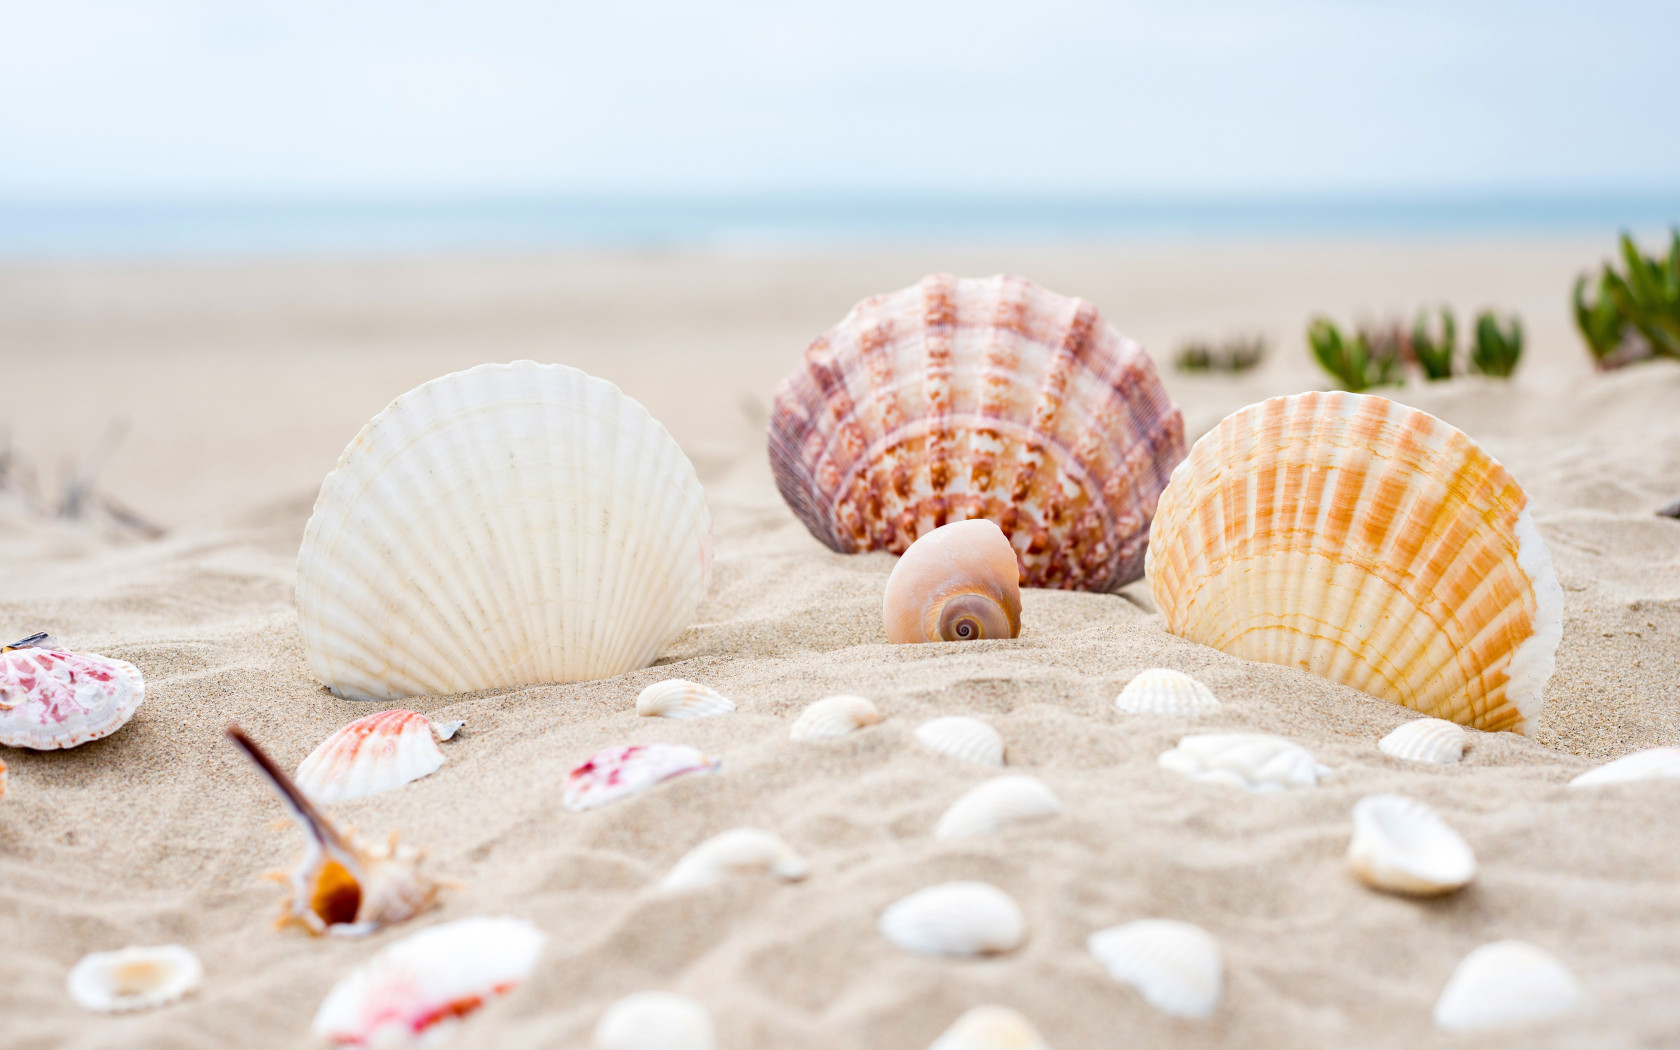 Shells on the ocean beach wallpaper 1680x1050